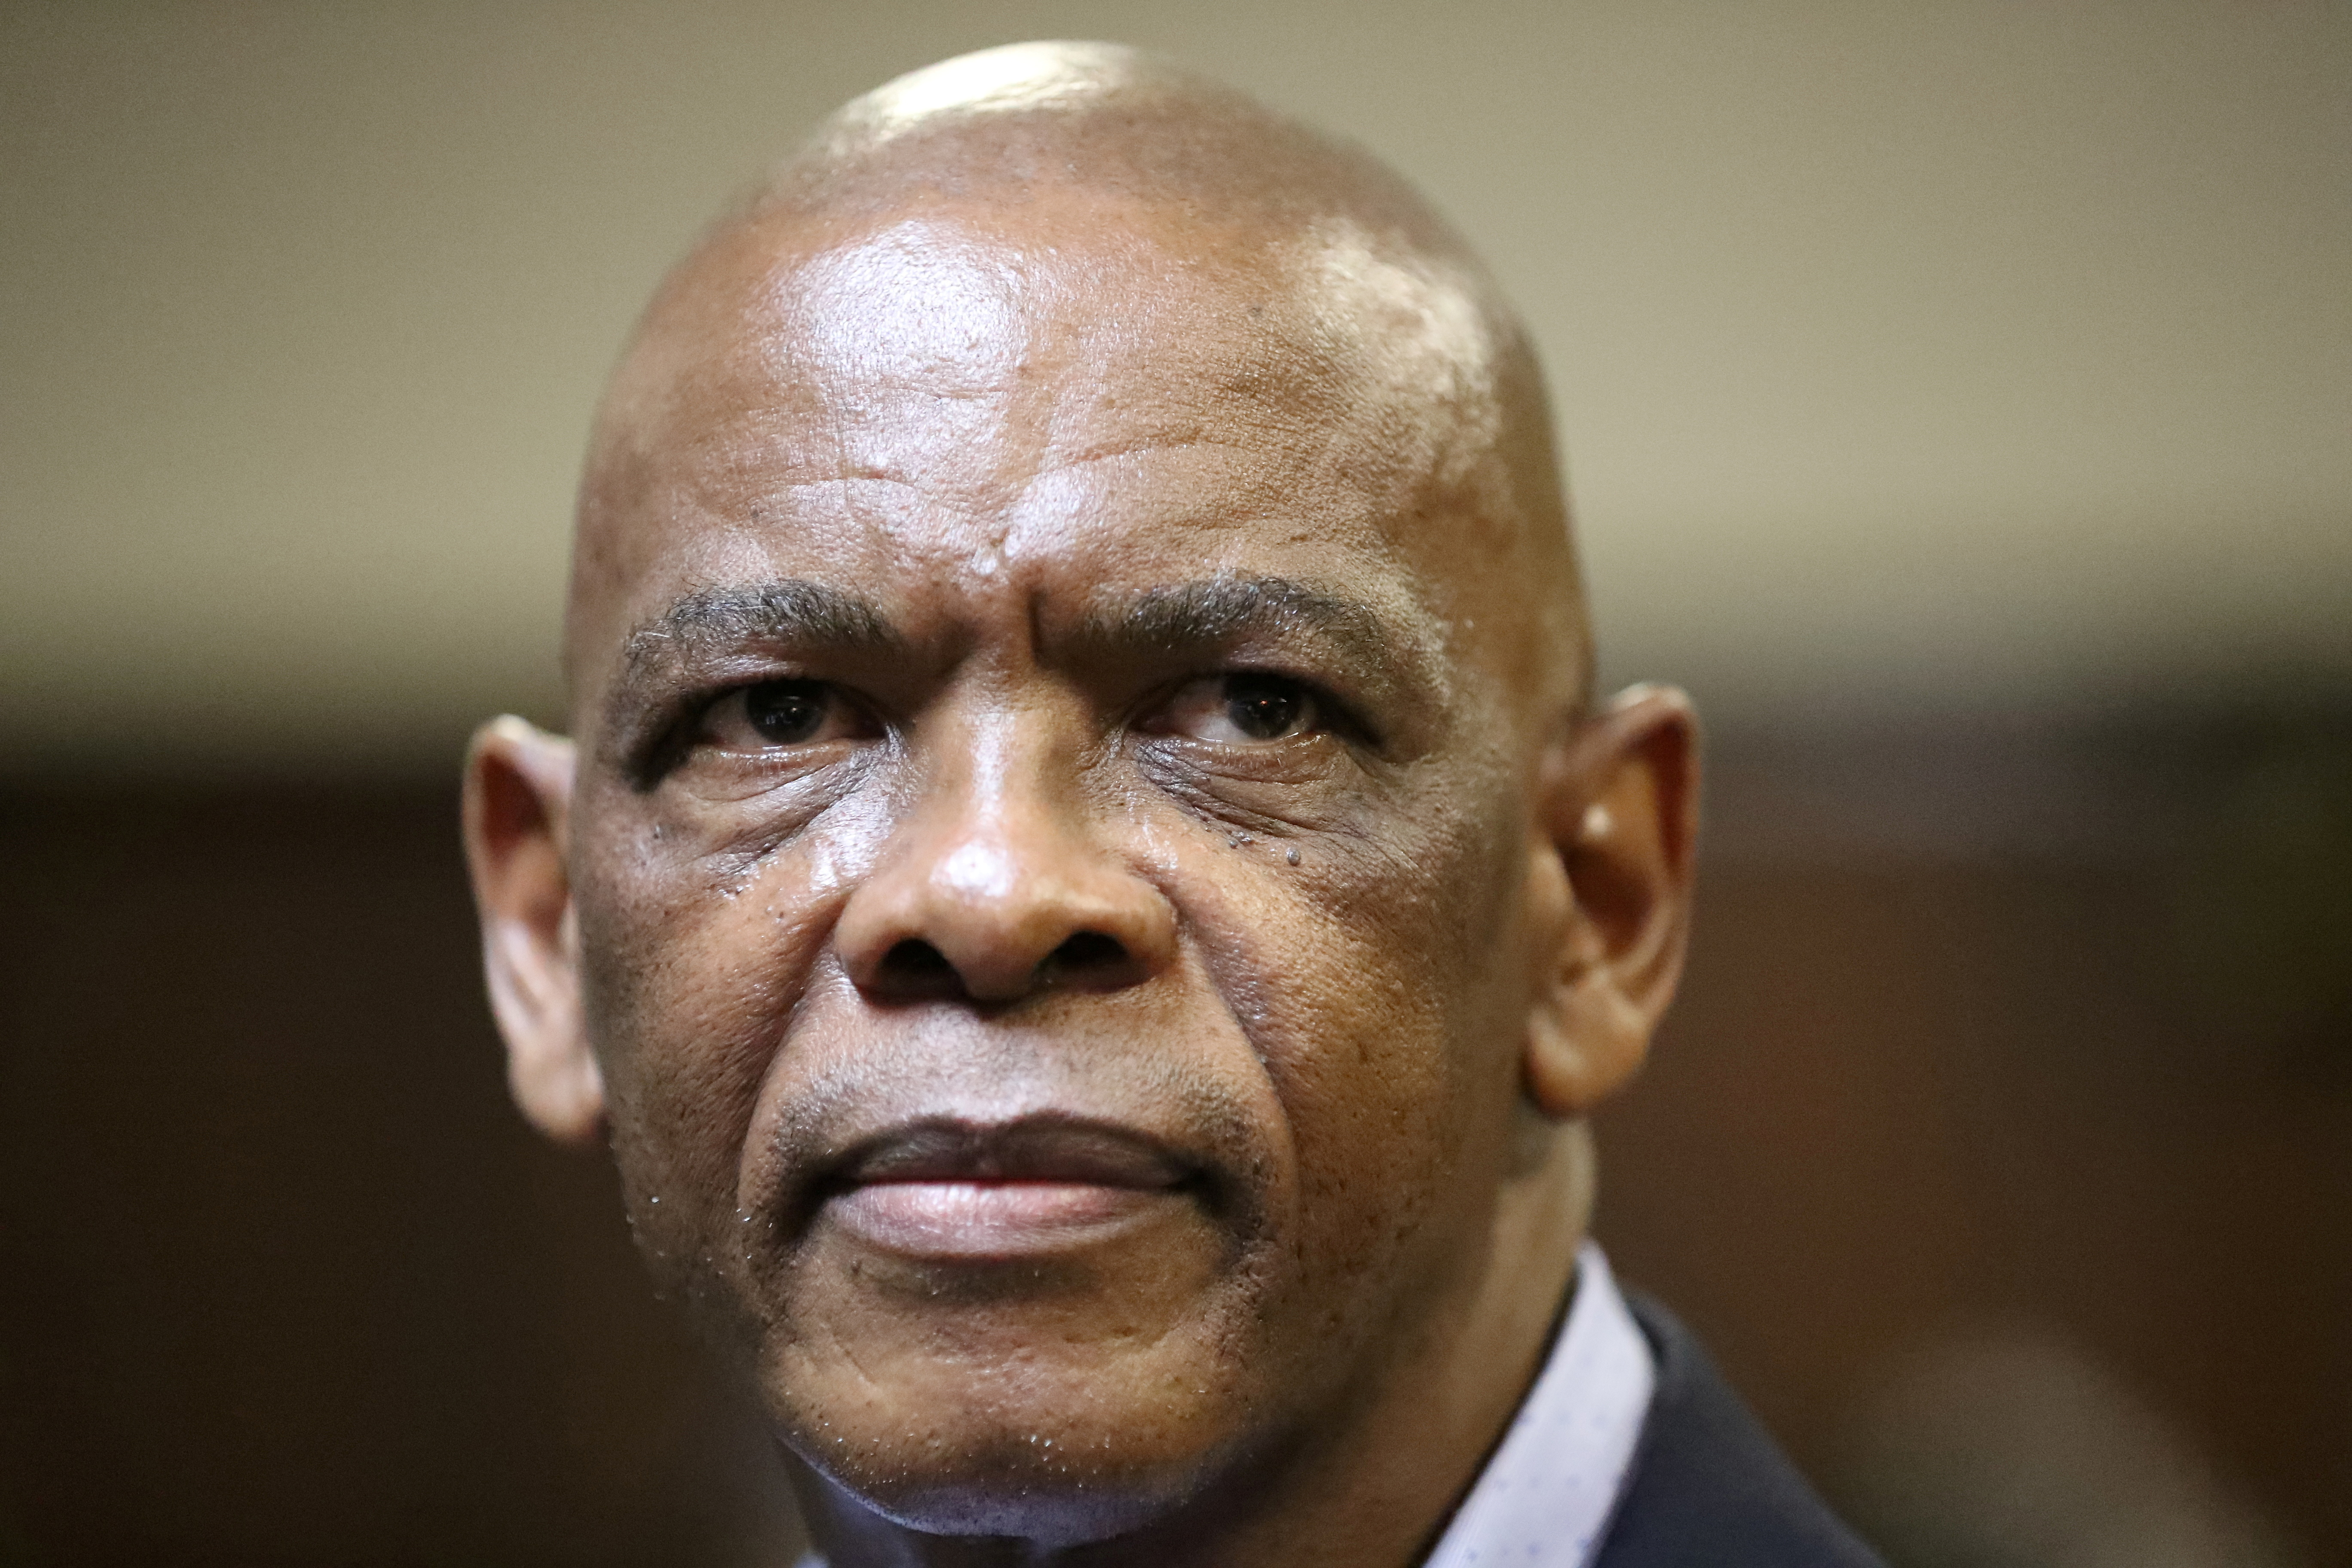 Ace Magashule, the secretary general of South Africa's ruling African National Congress looks on as he appears at the Bloemfontein high court in the Free State province, South Africa, November 13, 2020. REUTERS/Siphiwe Sibeko/File Photo